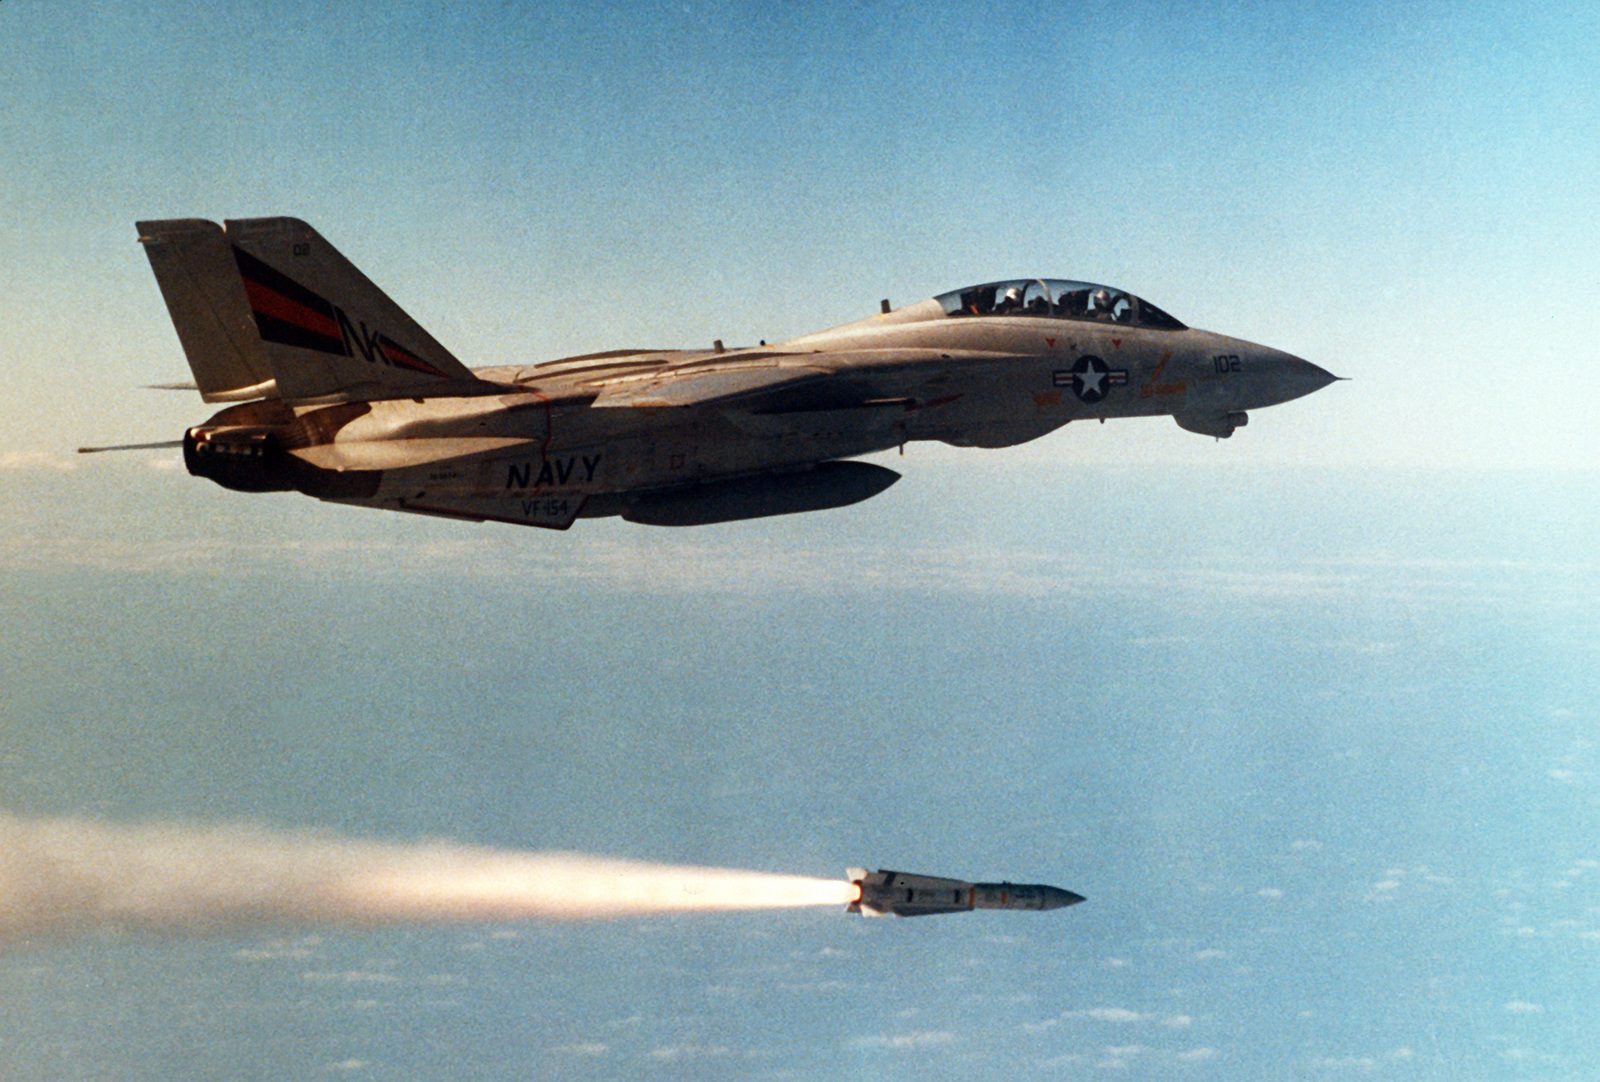 An air-to-air right view of an F-14 Tomcat aircraft from Fighter Squadron 154 (VF-154) firing an AIM-54 Phoenix missile - U.S. National Archives Public Domain Search